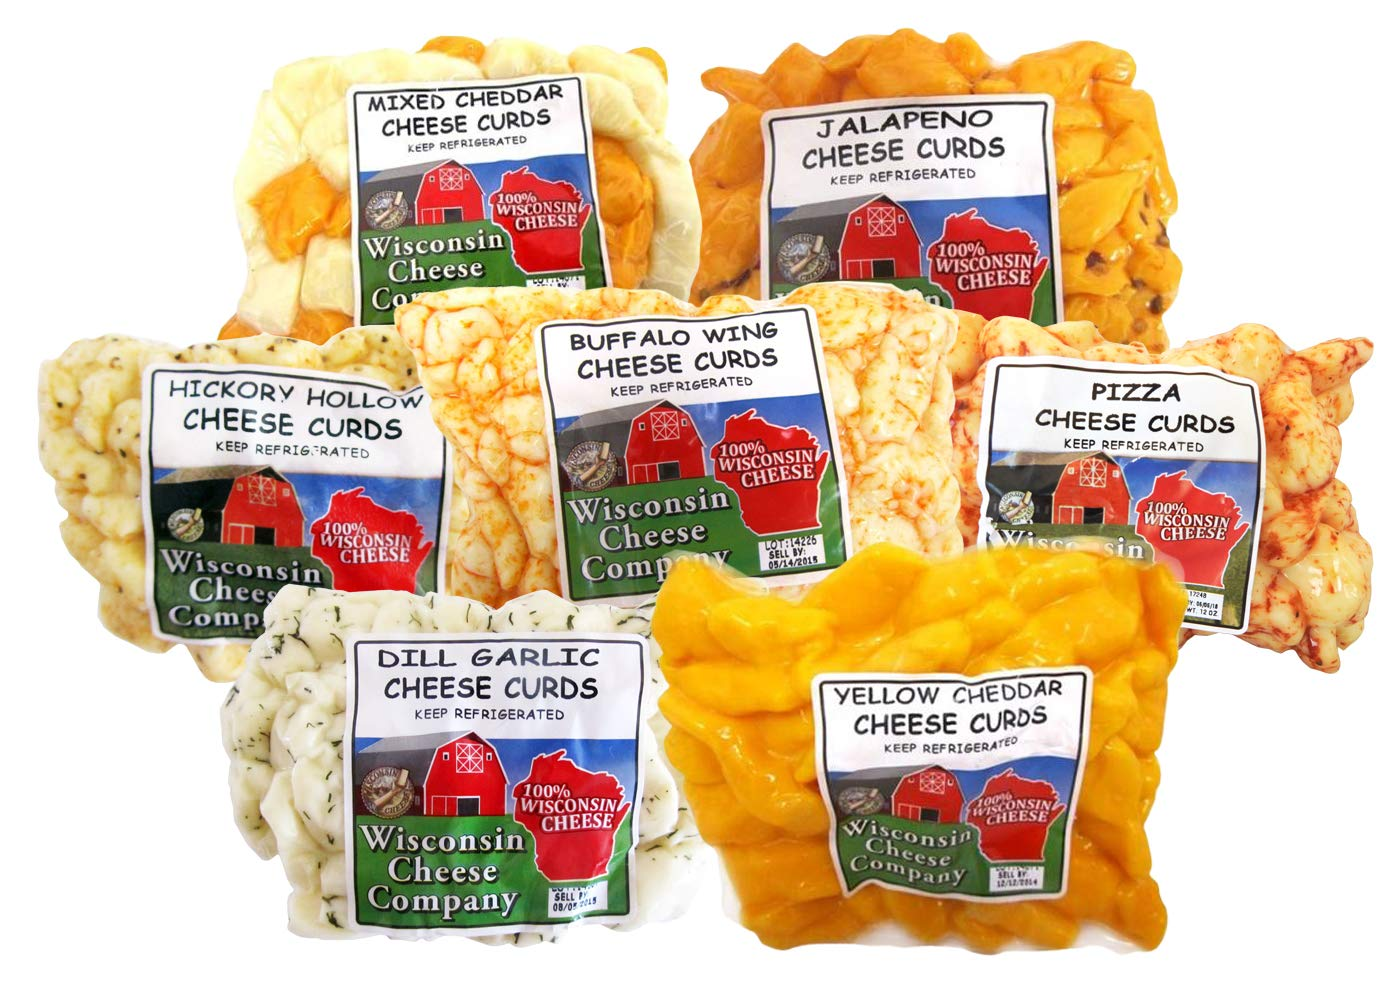 WISCONSIN CHEESE COMPANY'S, Wisconsin Classic Cheese Curd Sampler (5.25lbs) Mixed, Garlic Dill, Jalapeno, Yellow, Buffalo Wing, Pizza and Hickory Hollow (Smoked) Cheese Curds